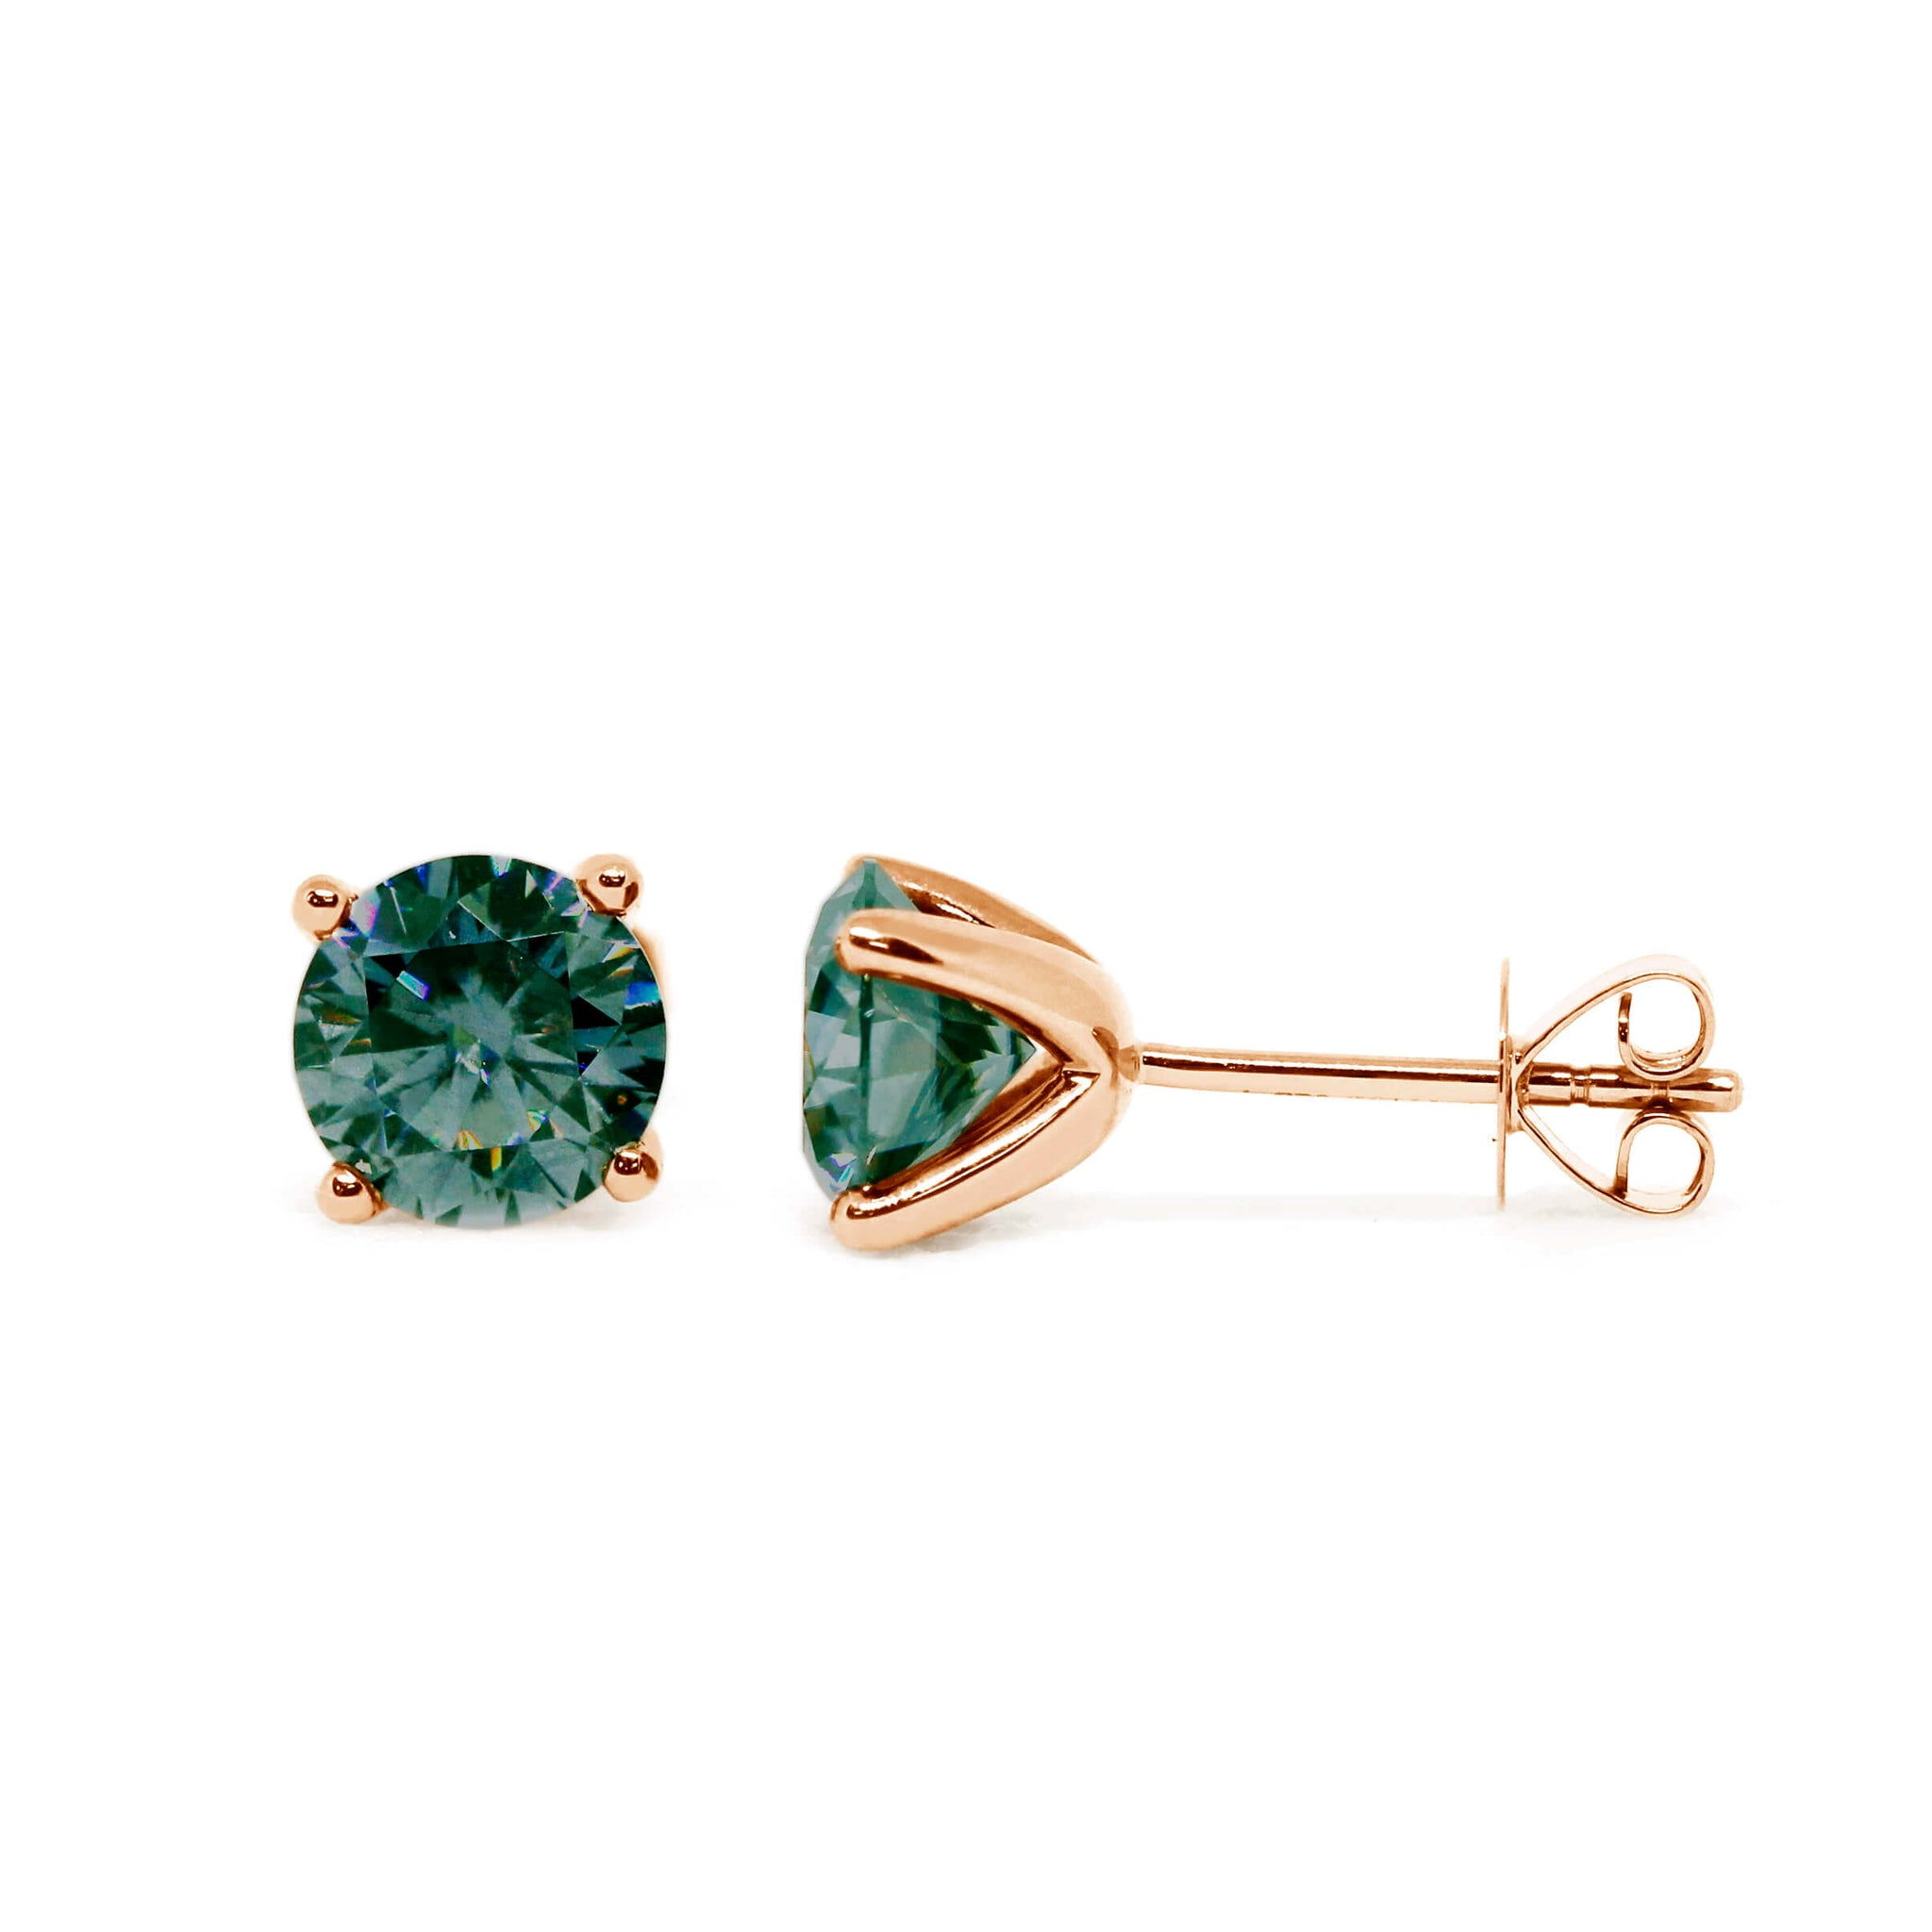 Dark Green Moissanite Solitaire 18K Rose Gold Stud Earrings